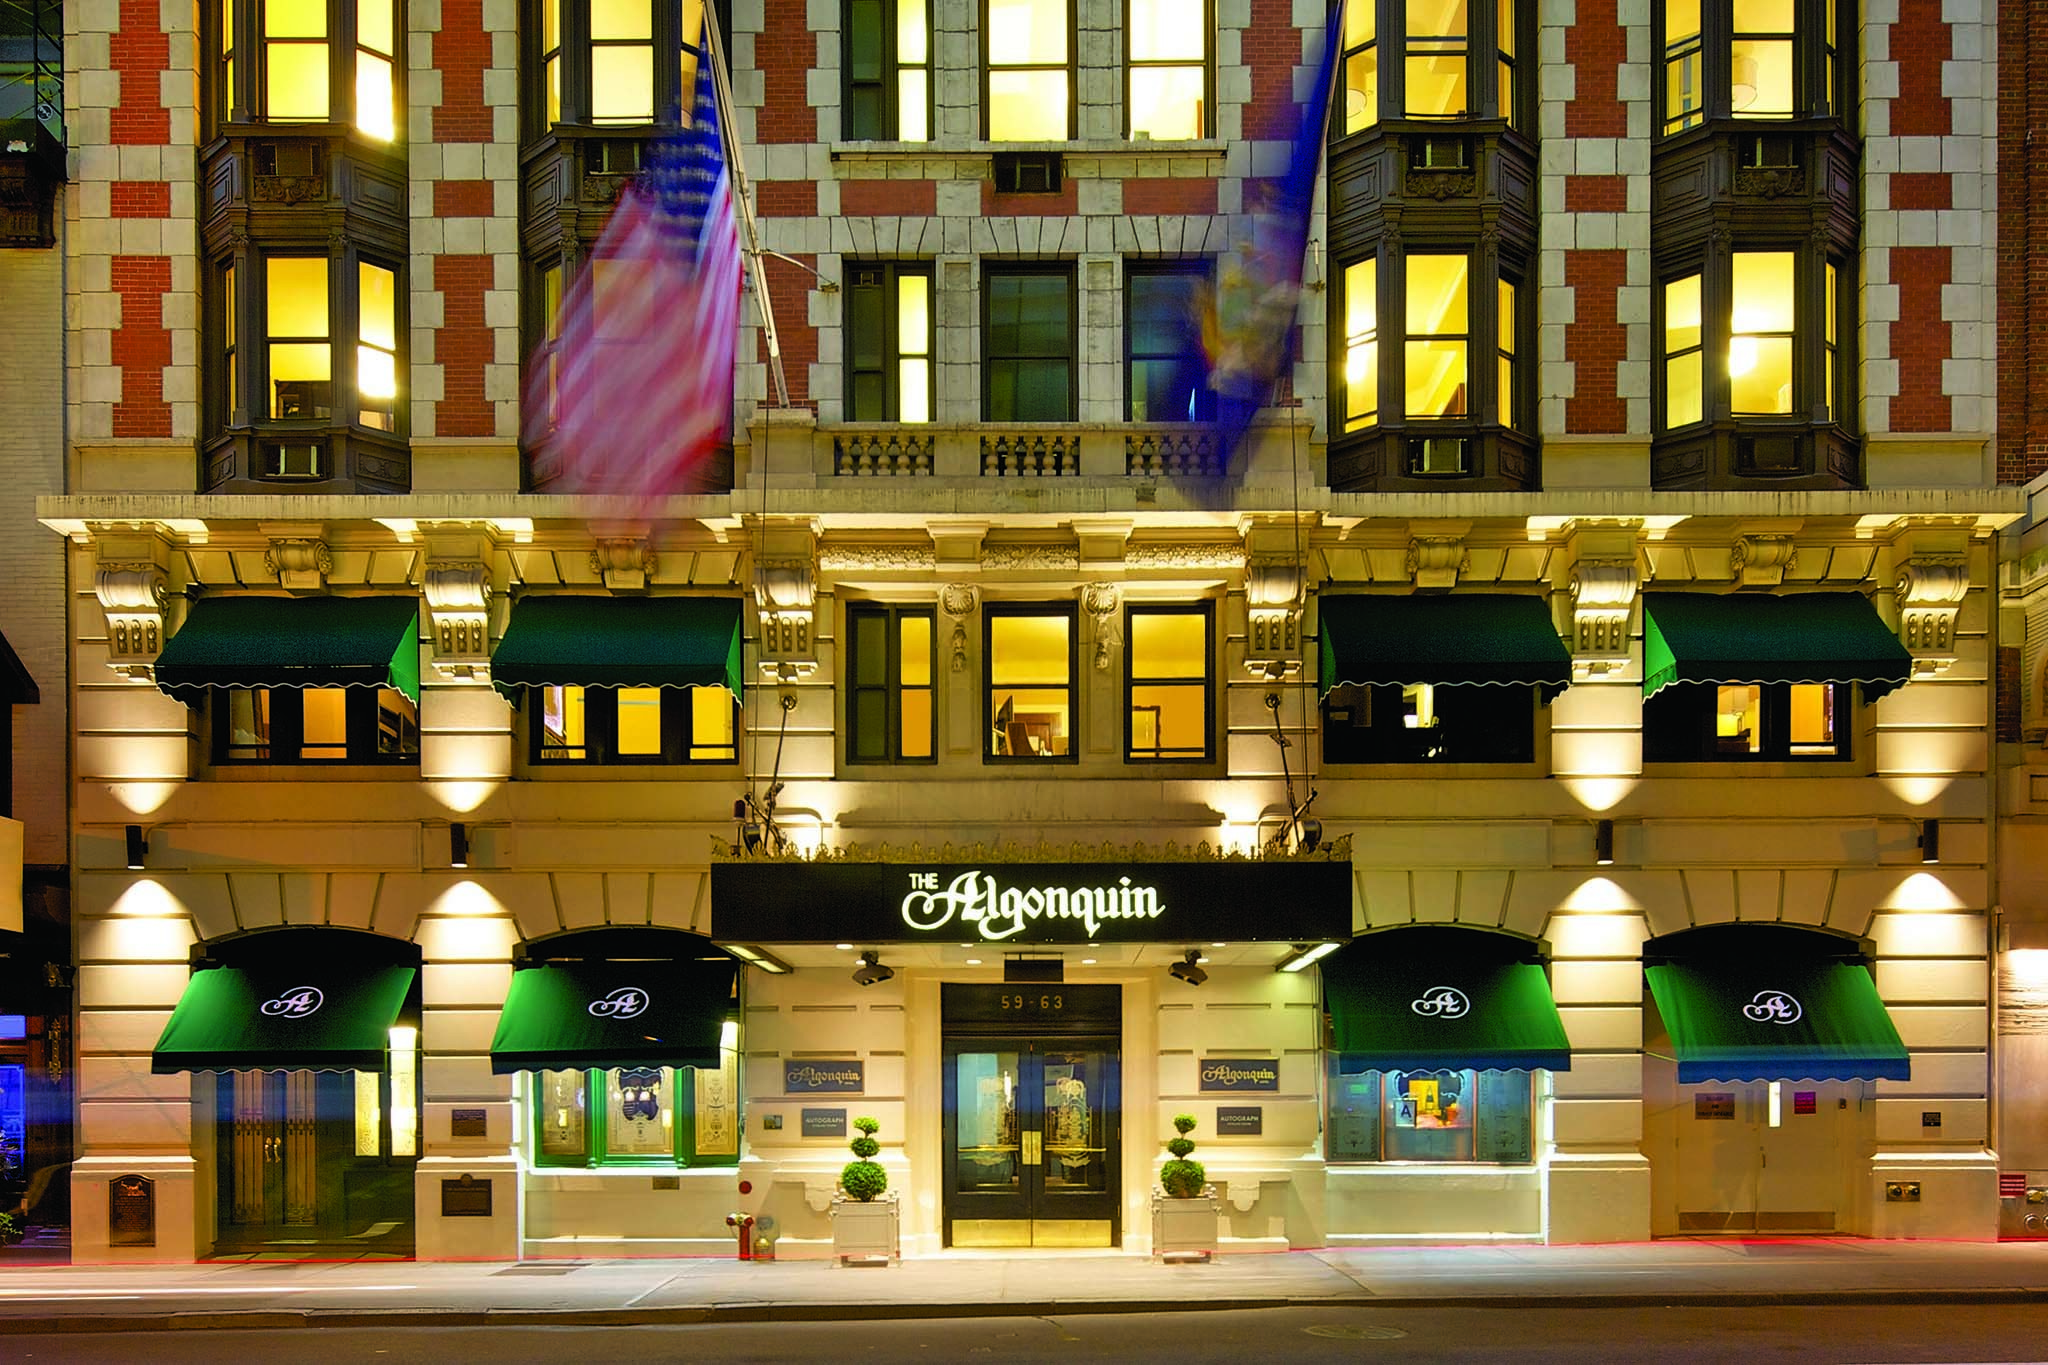 Best hotels near Broadway, NYC for theater, dining, and shopping